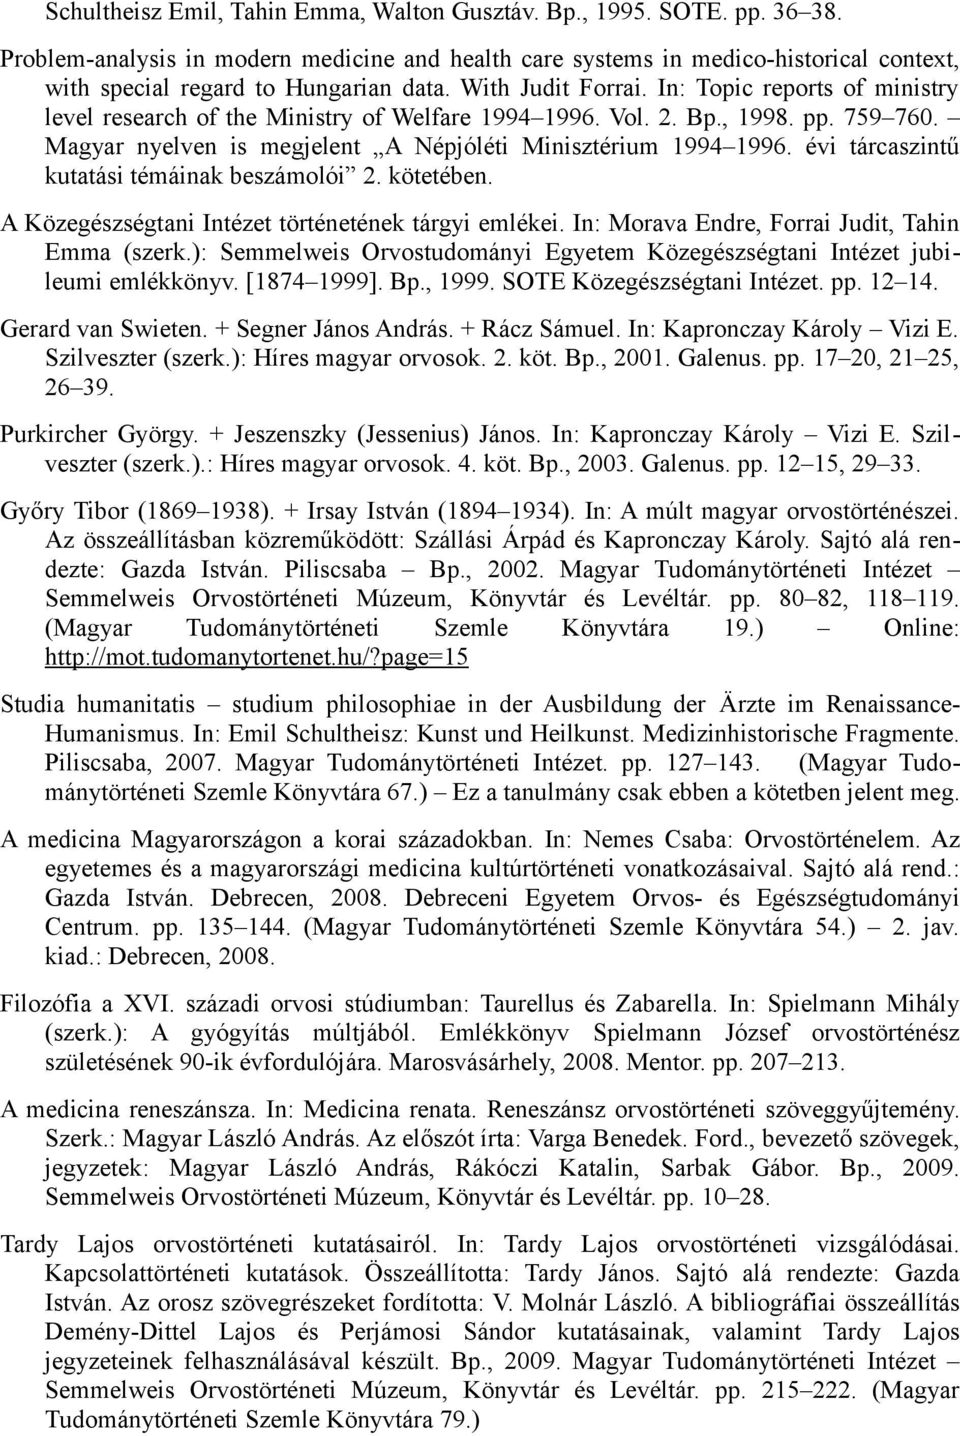 In: Topic reports of ministry level research of the Ministry of Welfare 1994 1996. Vol. 2. Bp., 1998. pp. 759 760. Magyar nyelven is megjelent A Népjóléti Minisztérium 1994 1996.